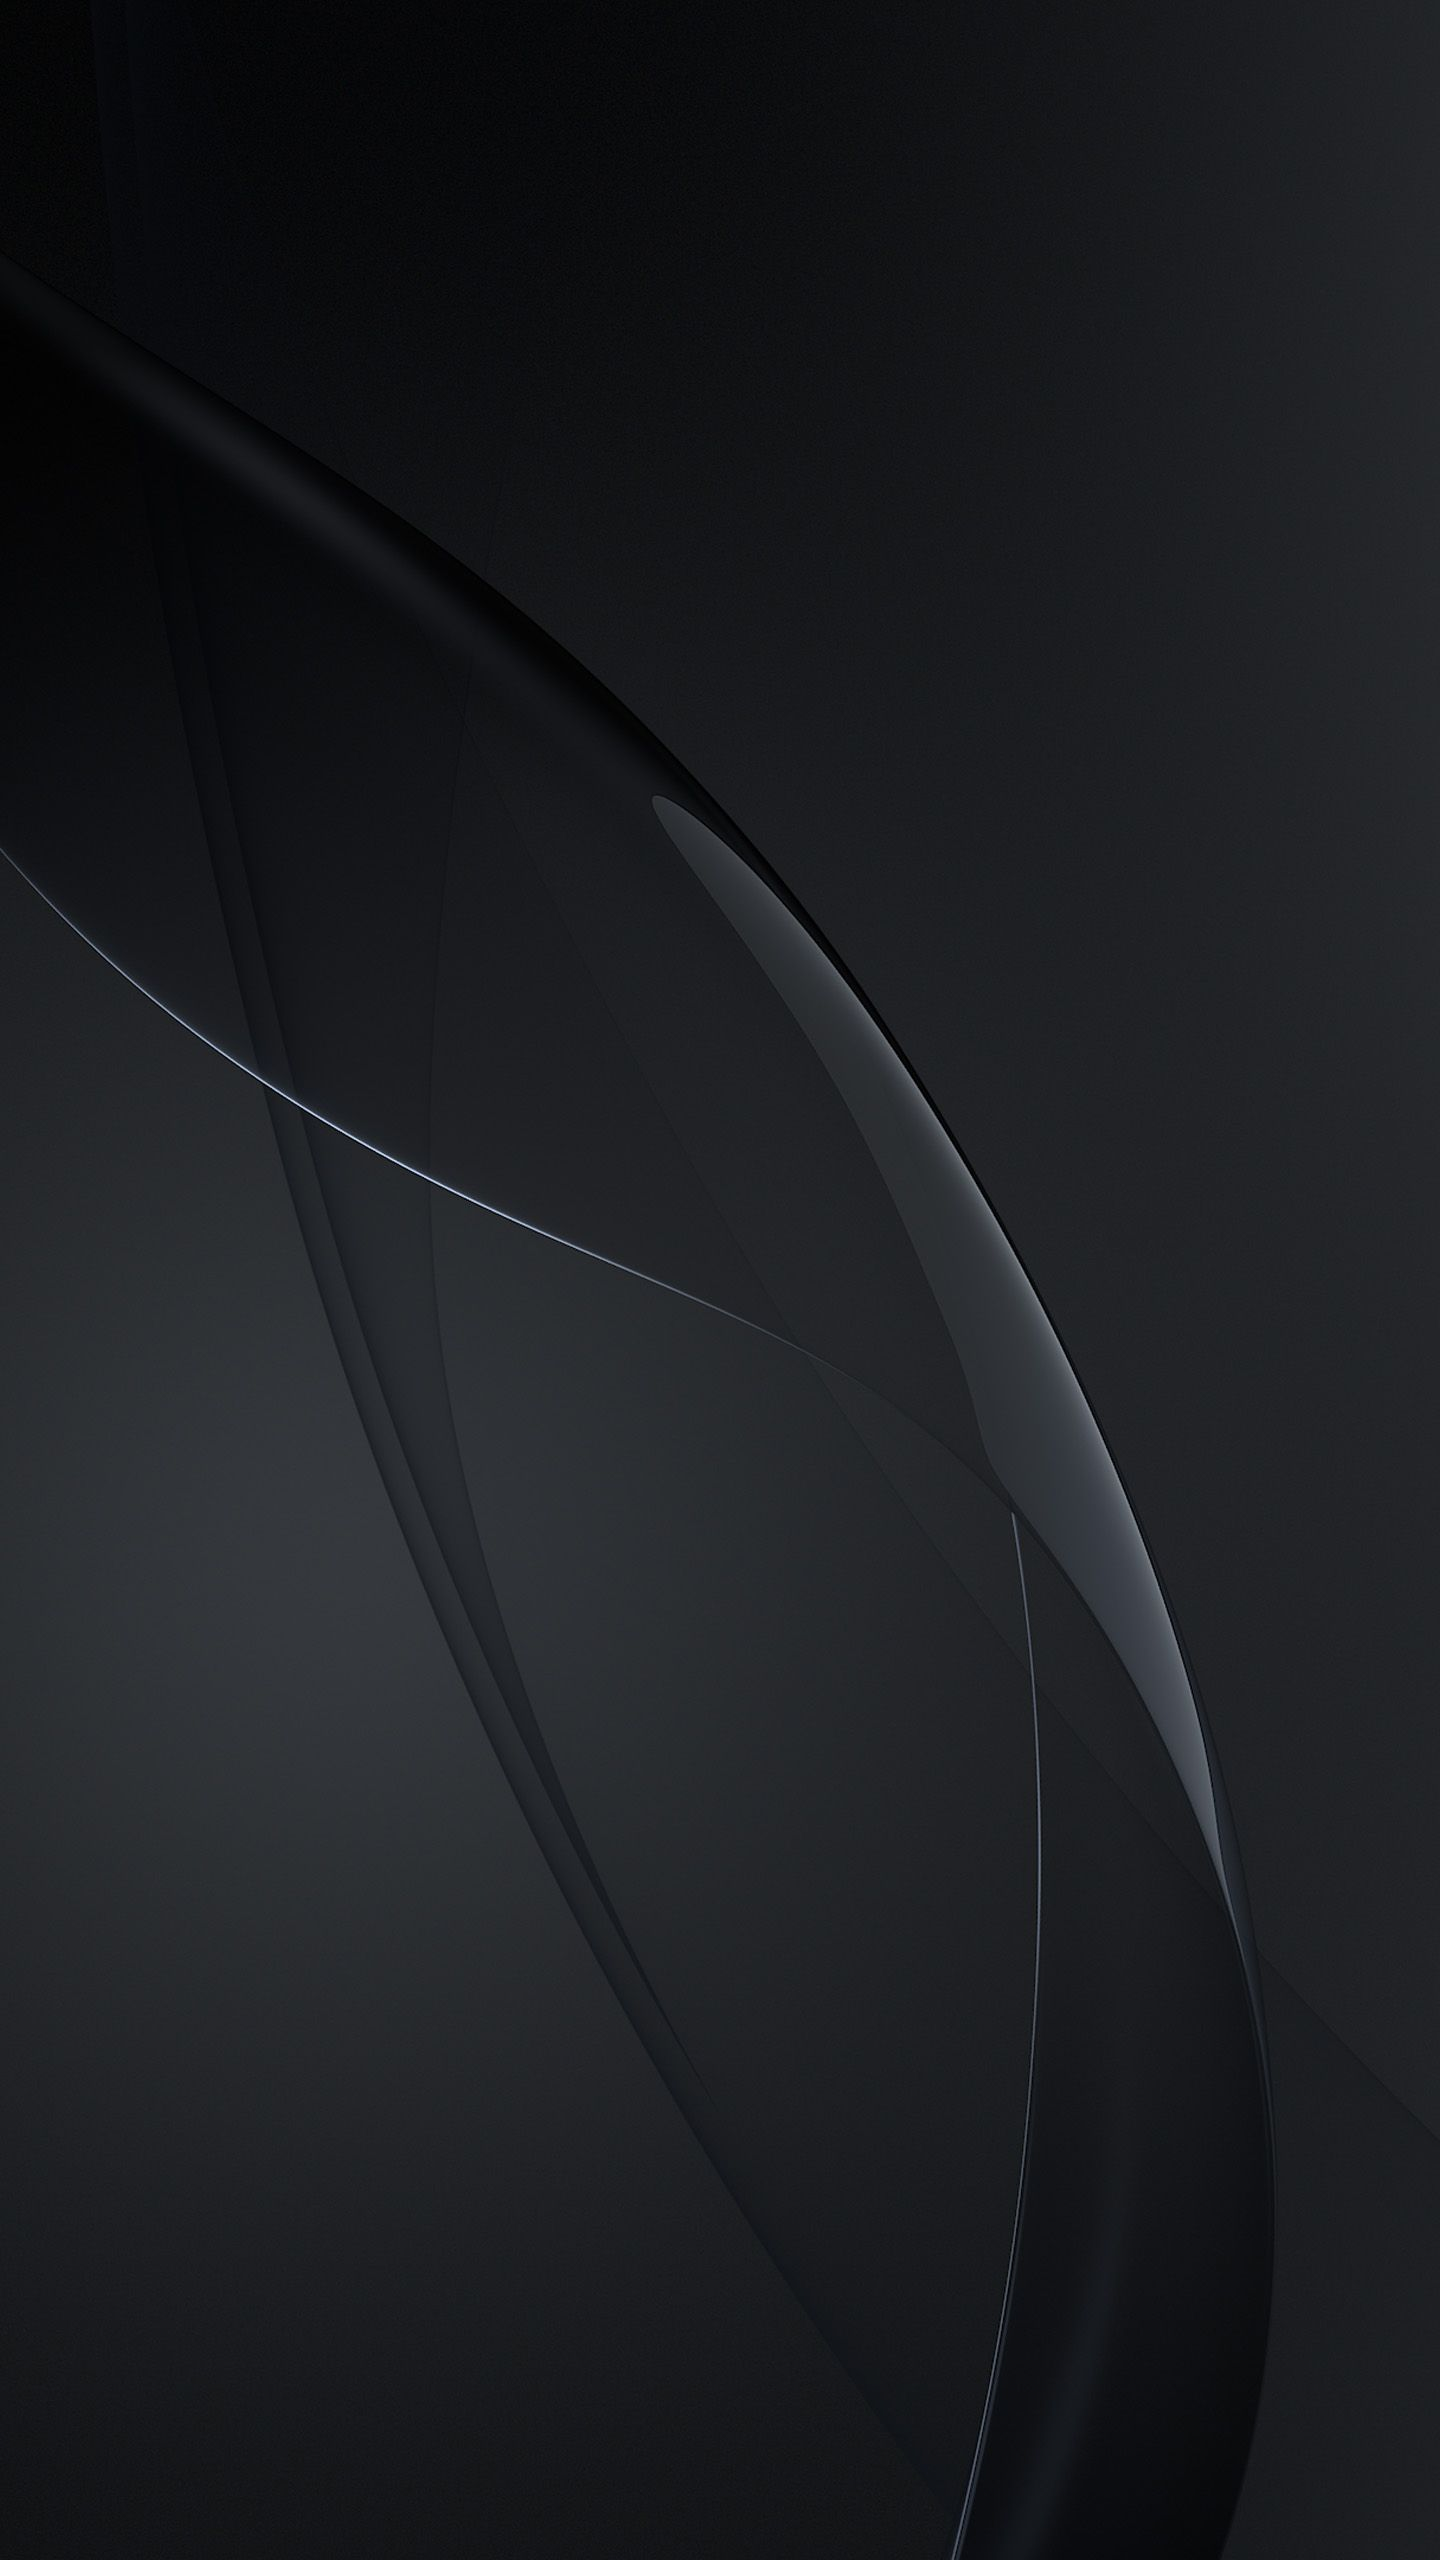 Black-Abstract-Live-http-and-backgrounds-net-black-abstract-live-wallpaper-wp3803198